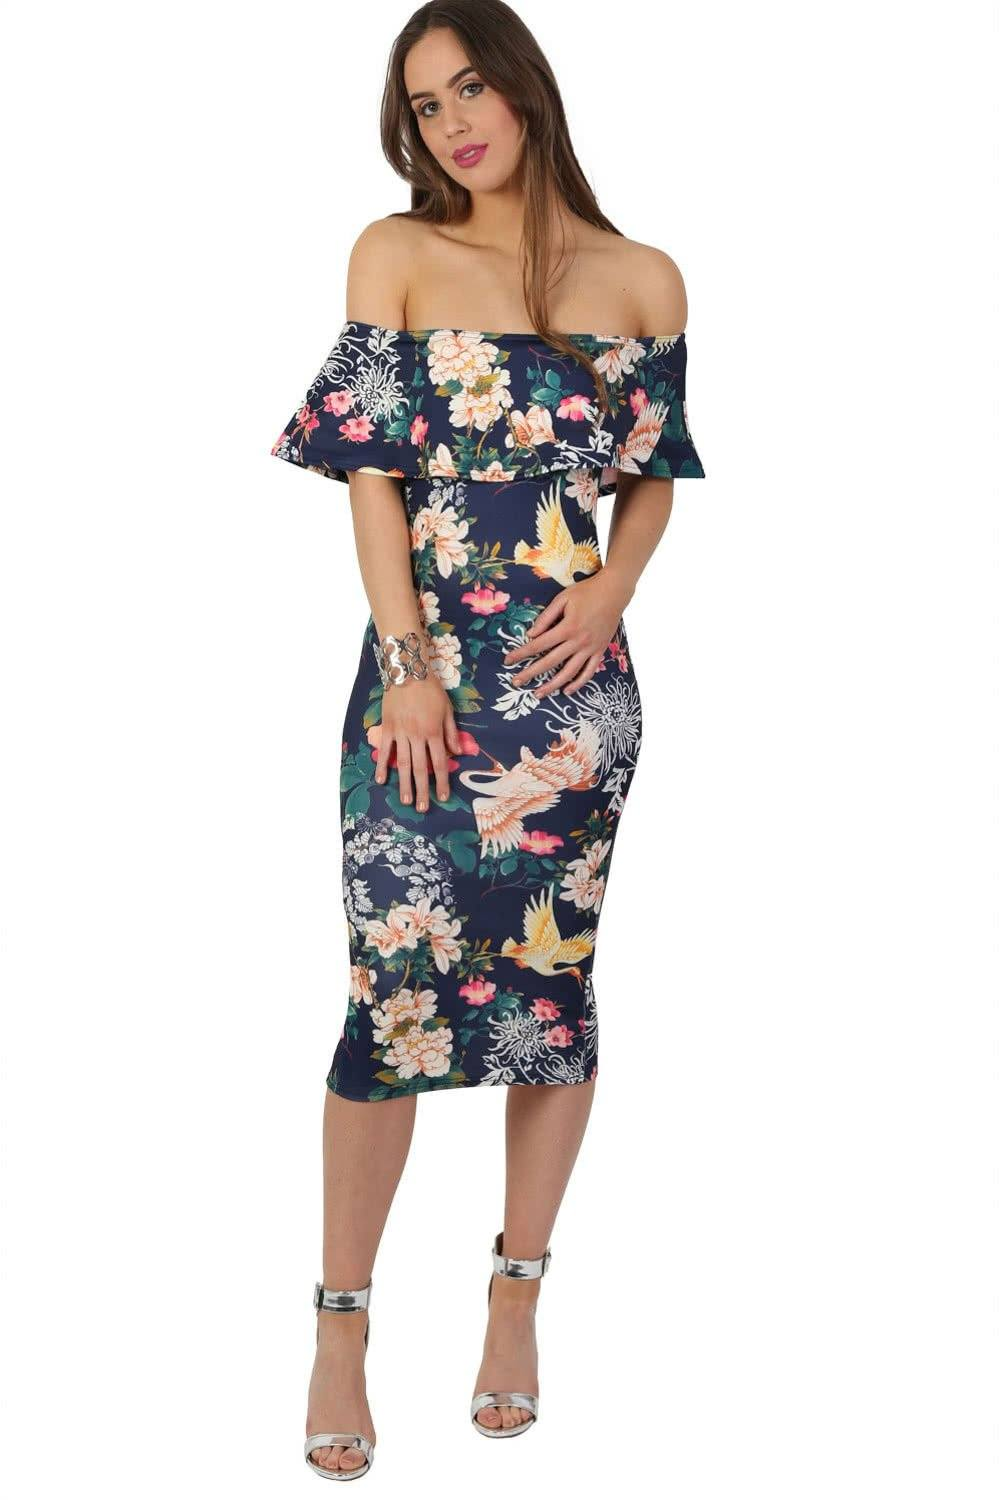 Dresses - Oriental Floral Bardot Frill Bodycon Midi Dress In Navy Blue